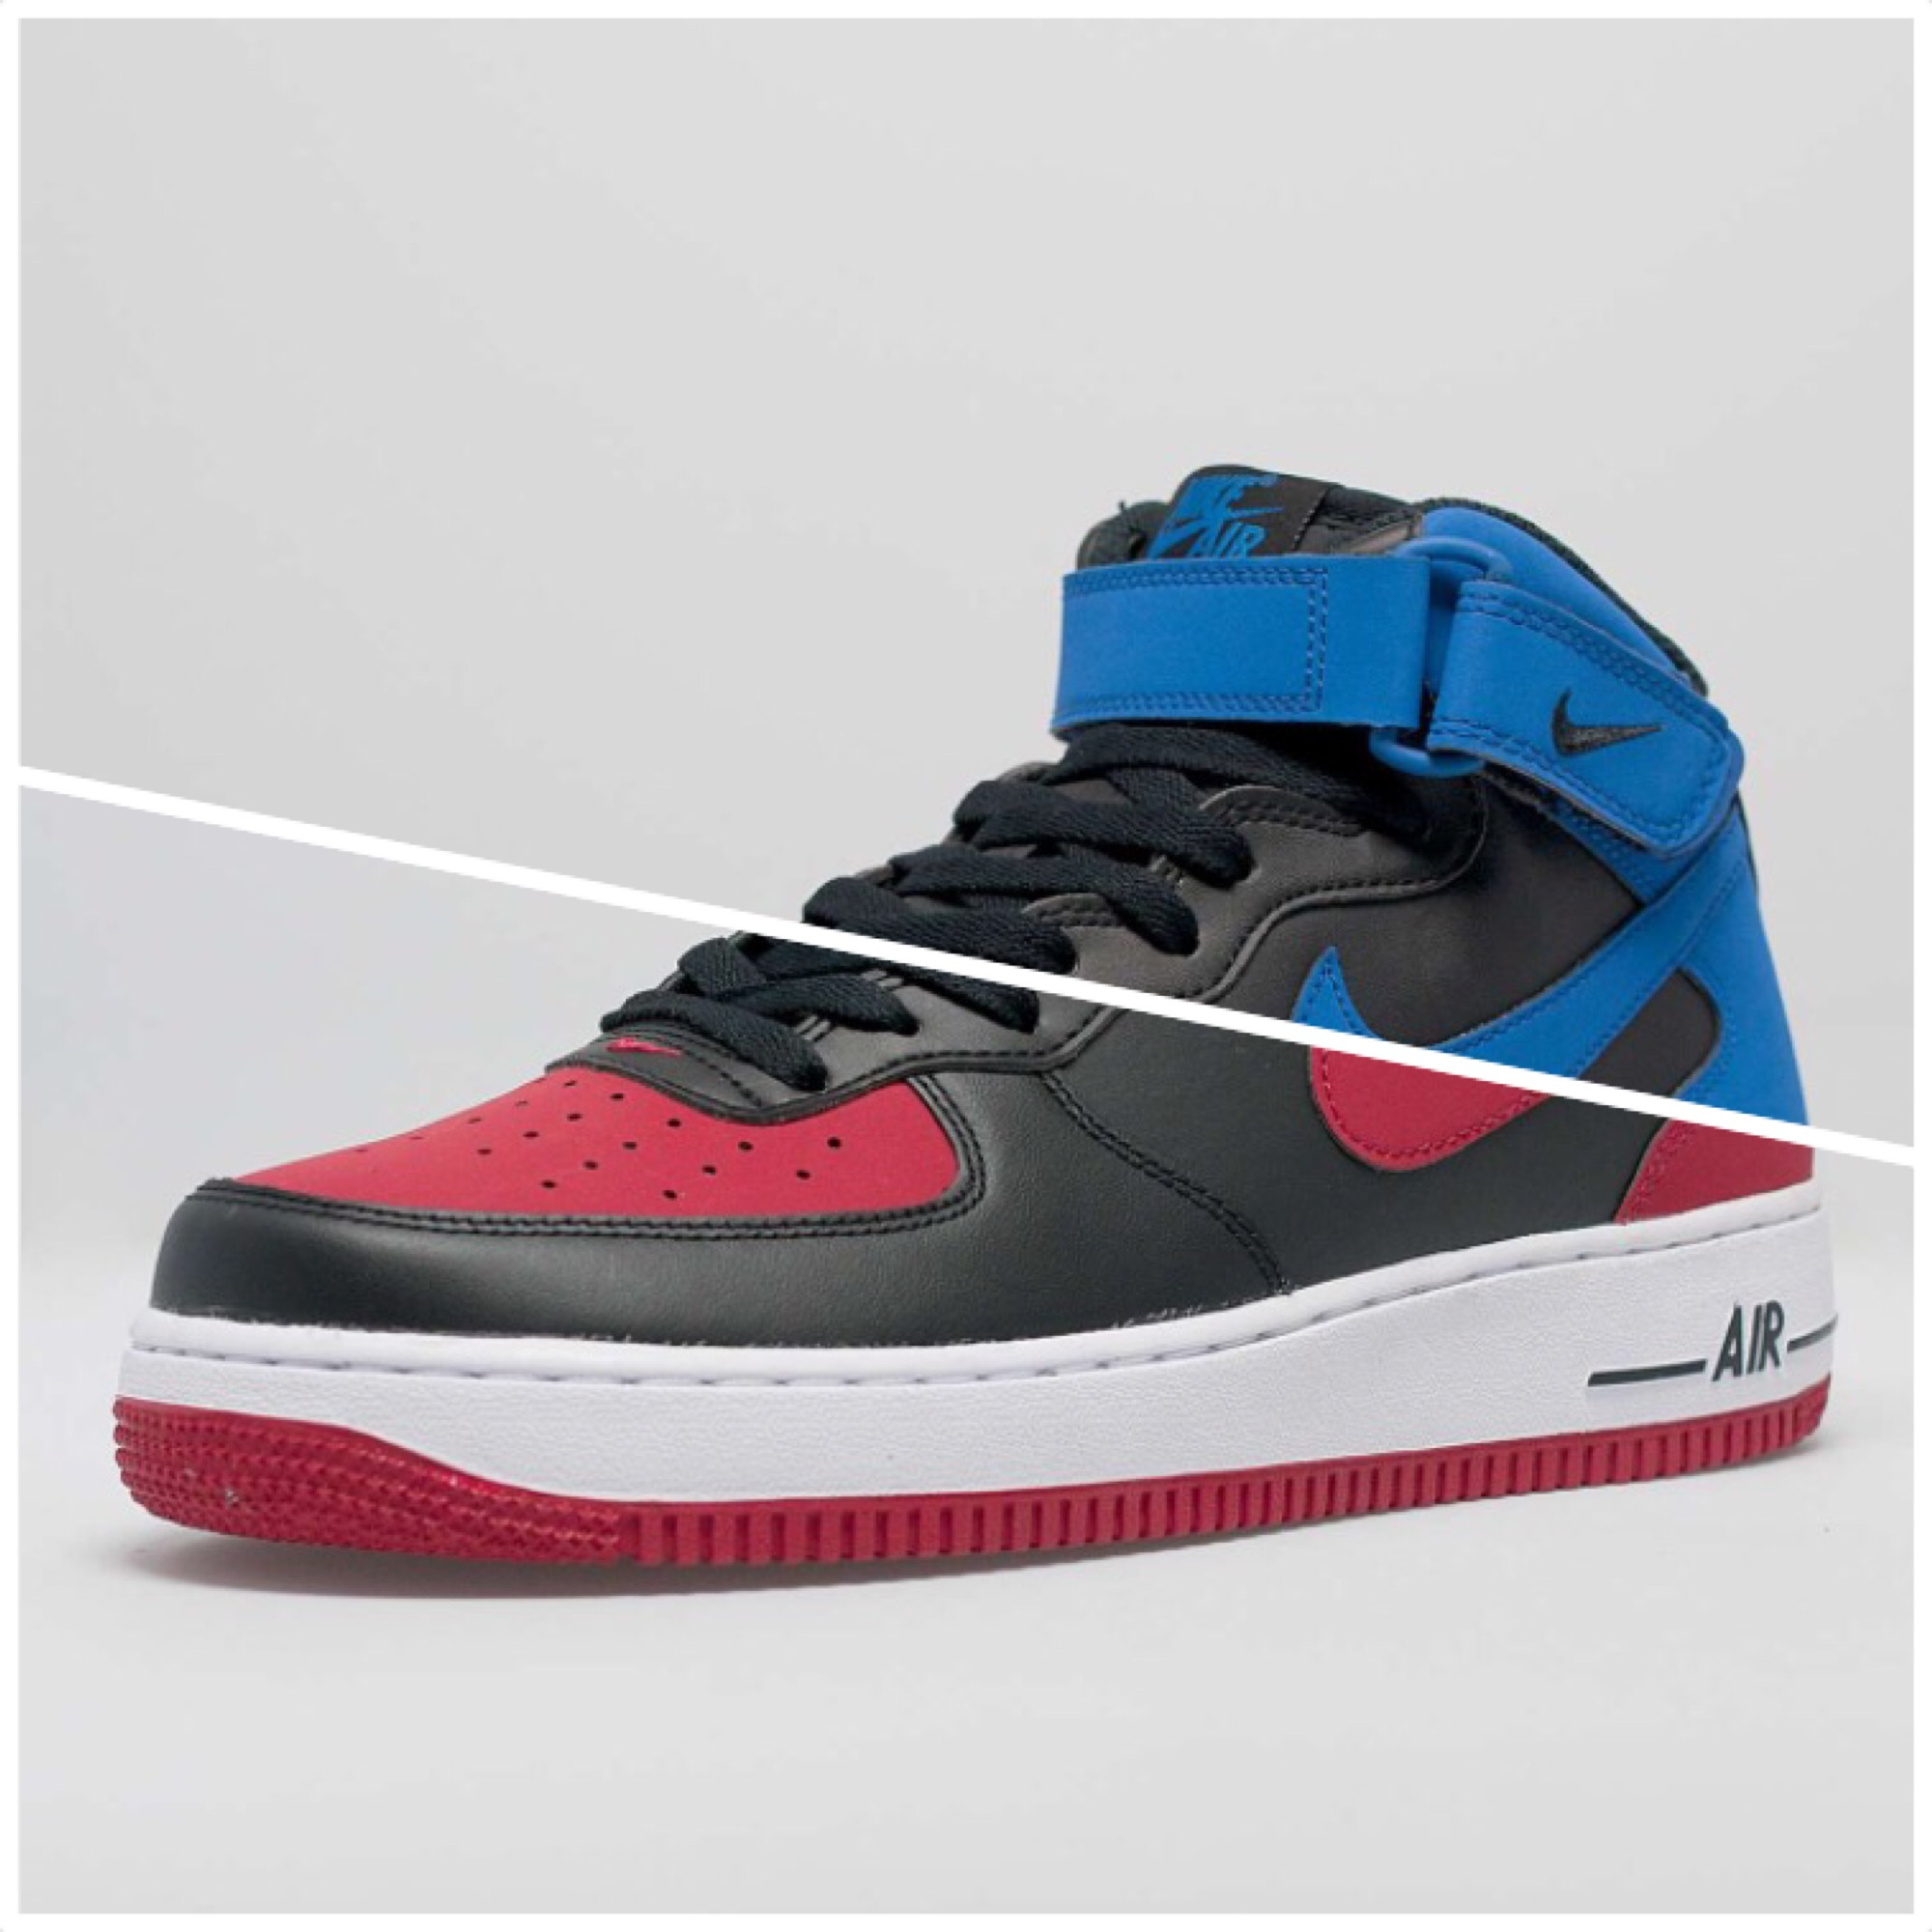 Nike Air Force 1 Mid Colorways Inspired by the  Bred     Royal  Air ... 09e2f3b54